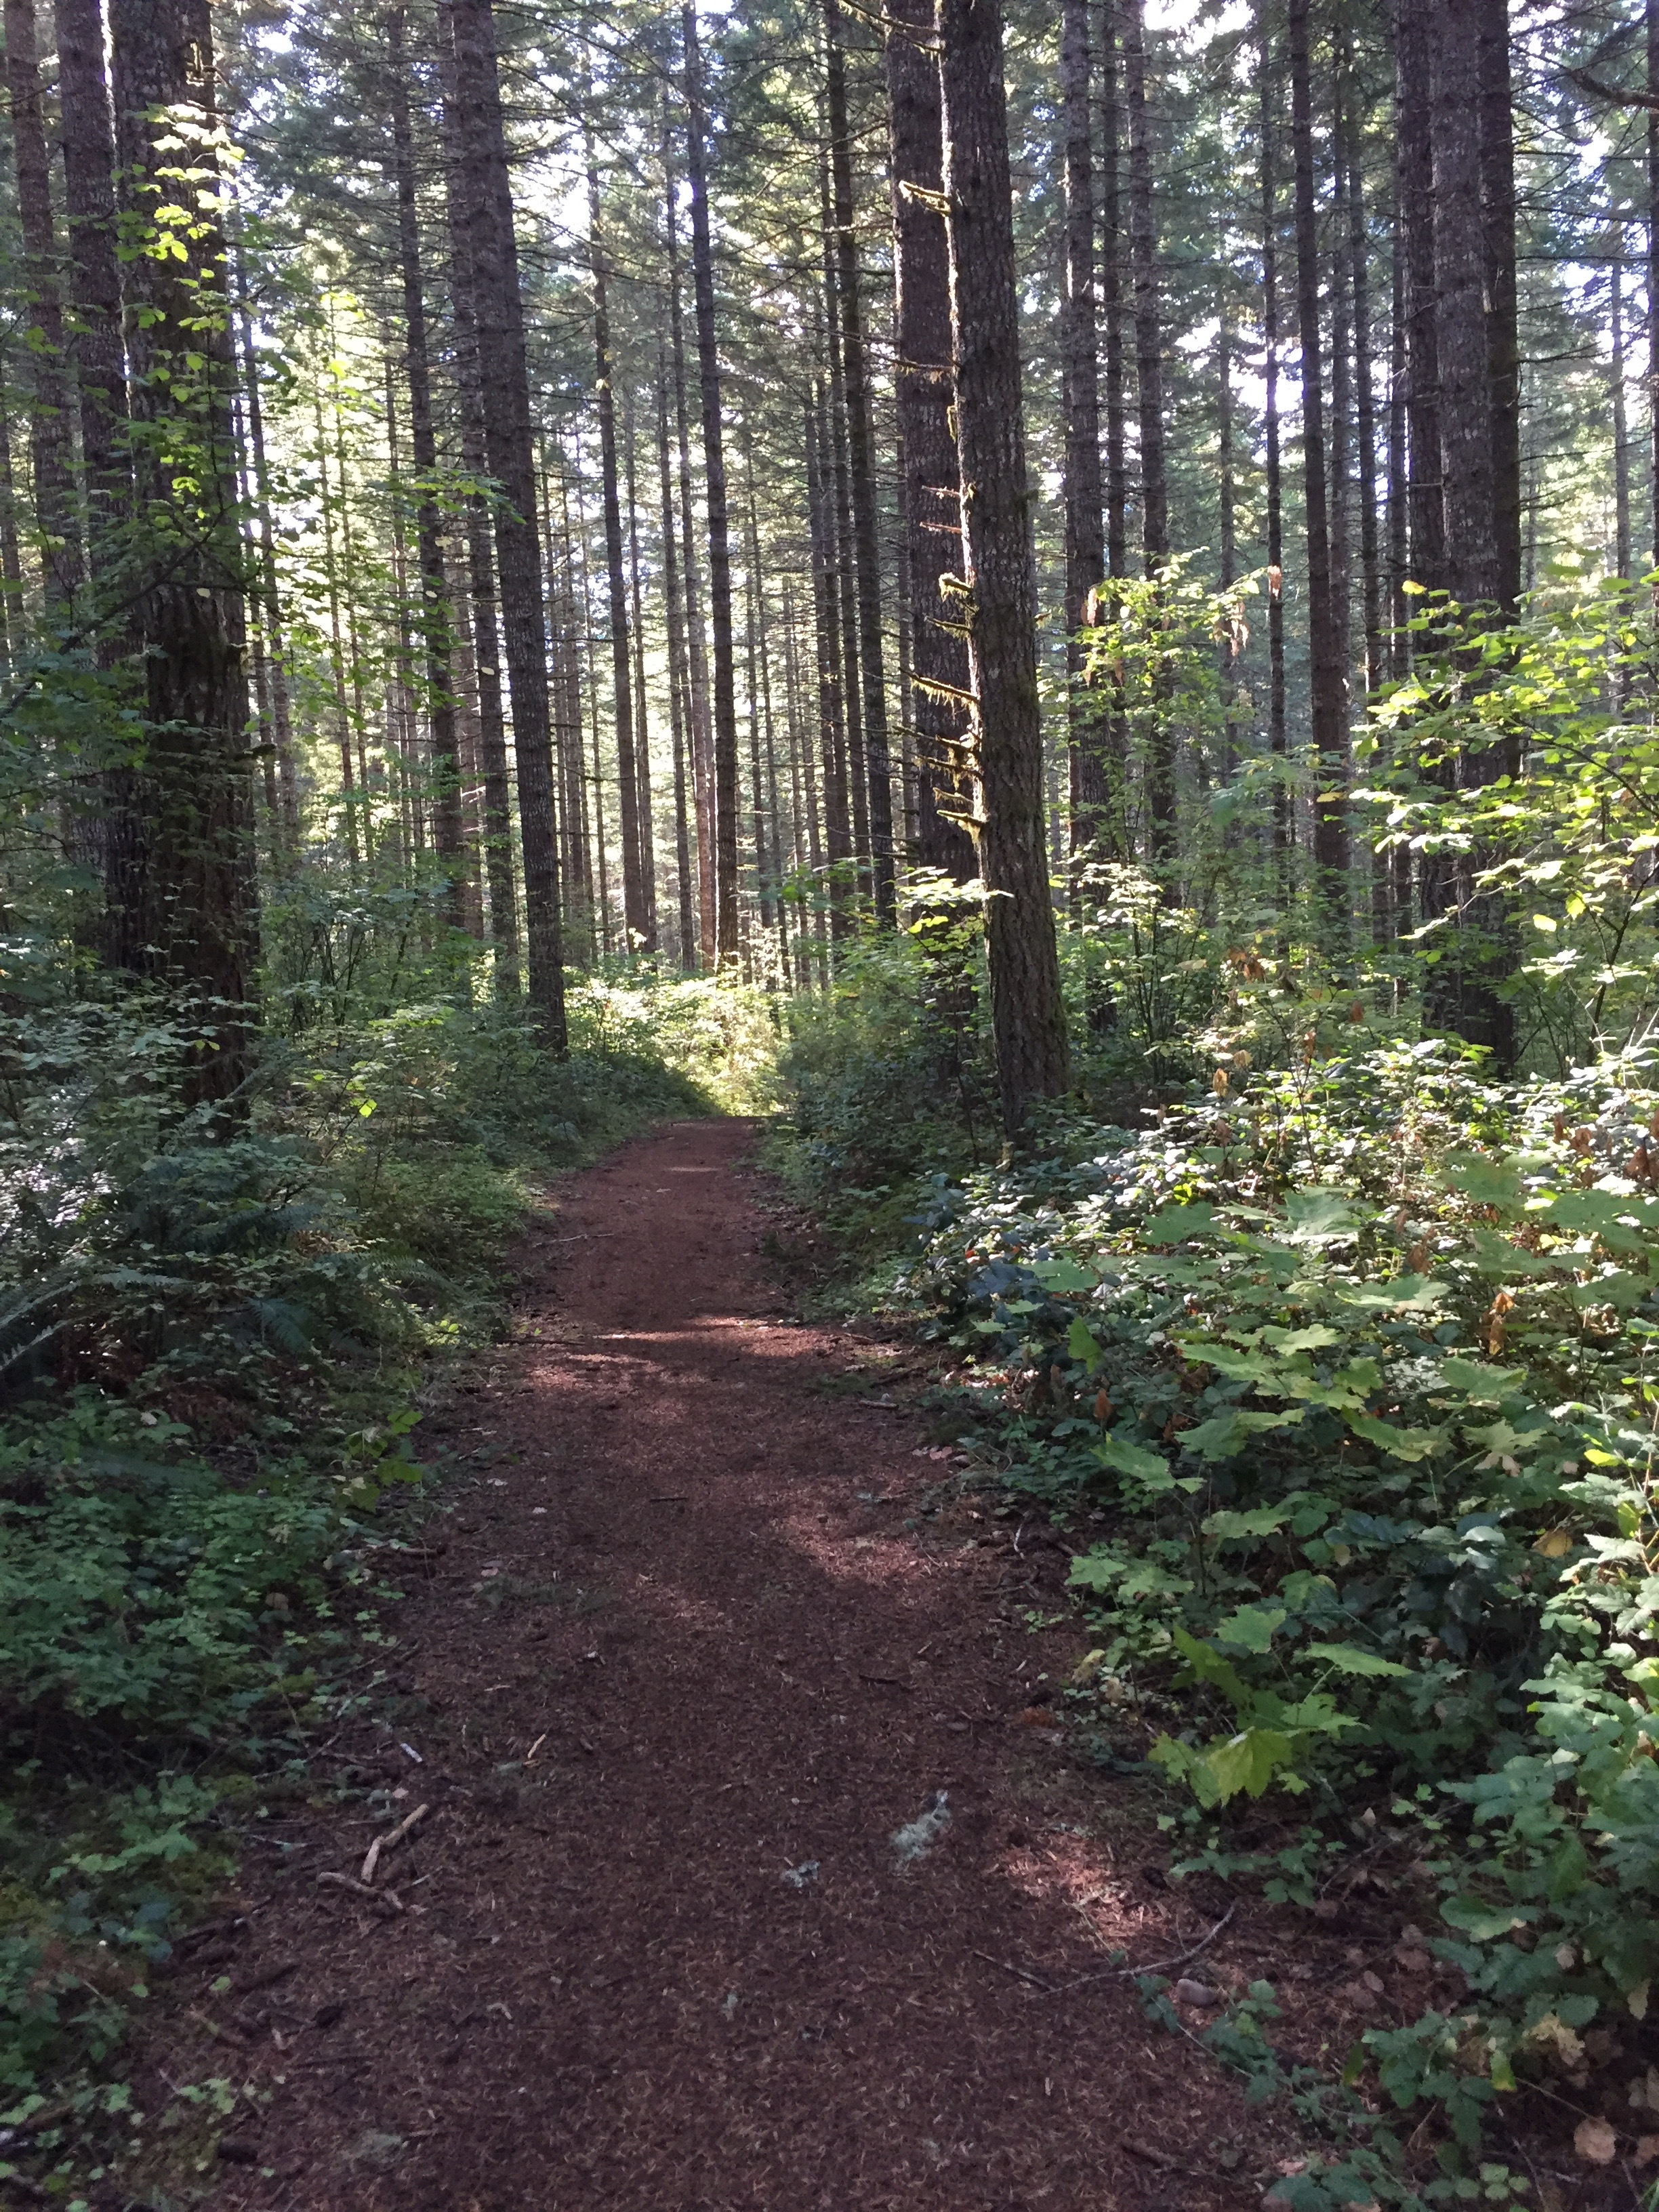 Nice trail in the woods